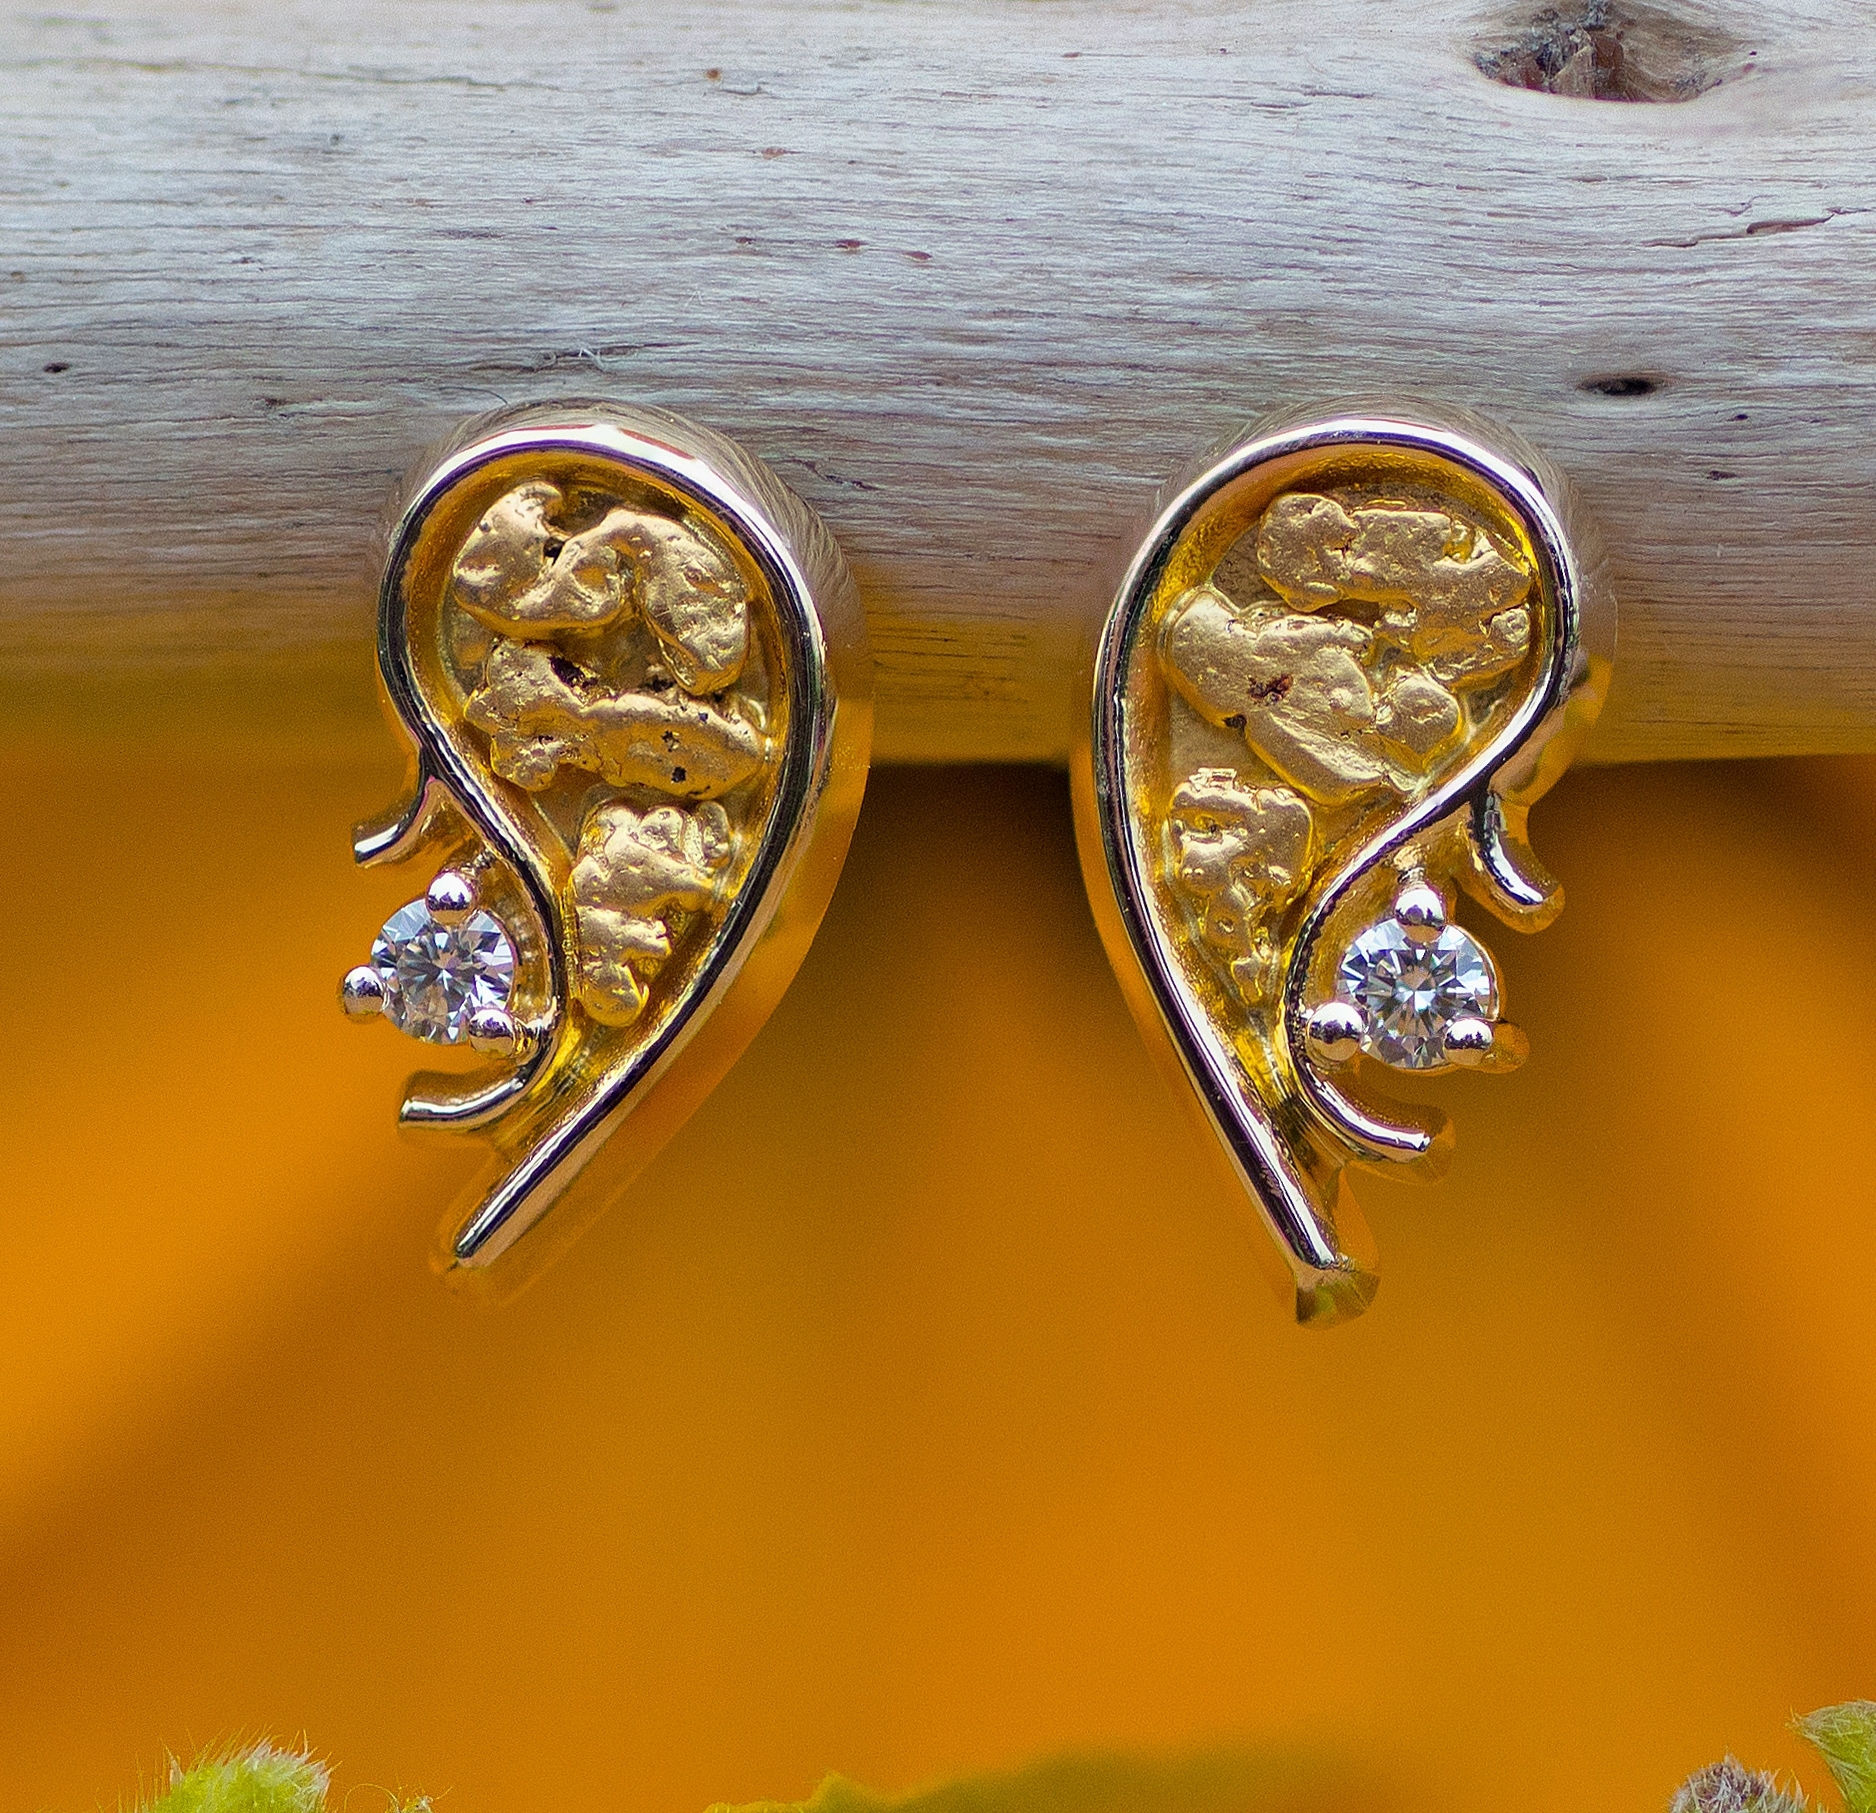 Gold Nugget and Diamond Earrings in yellow gold